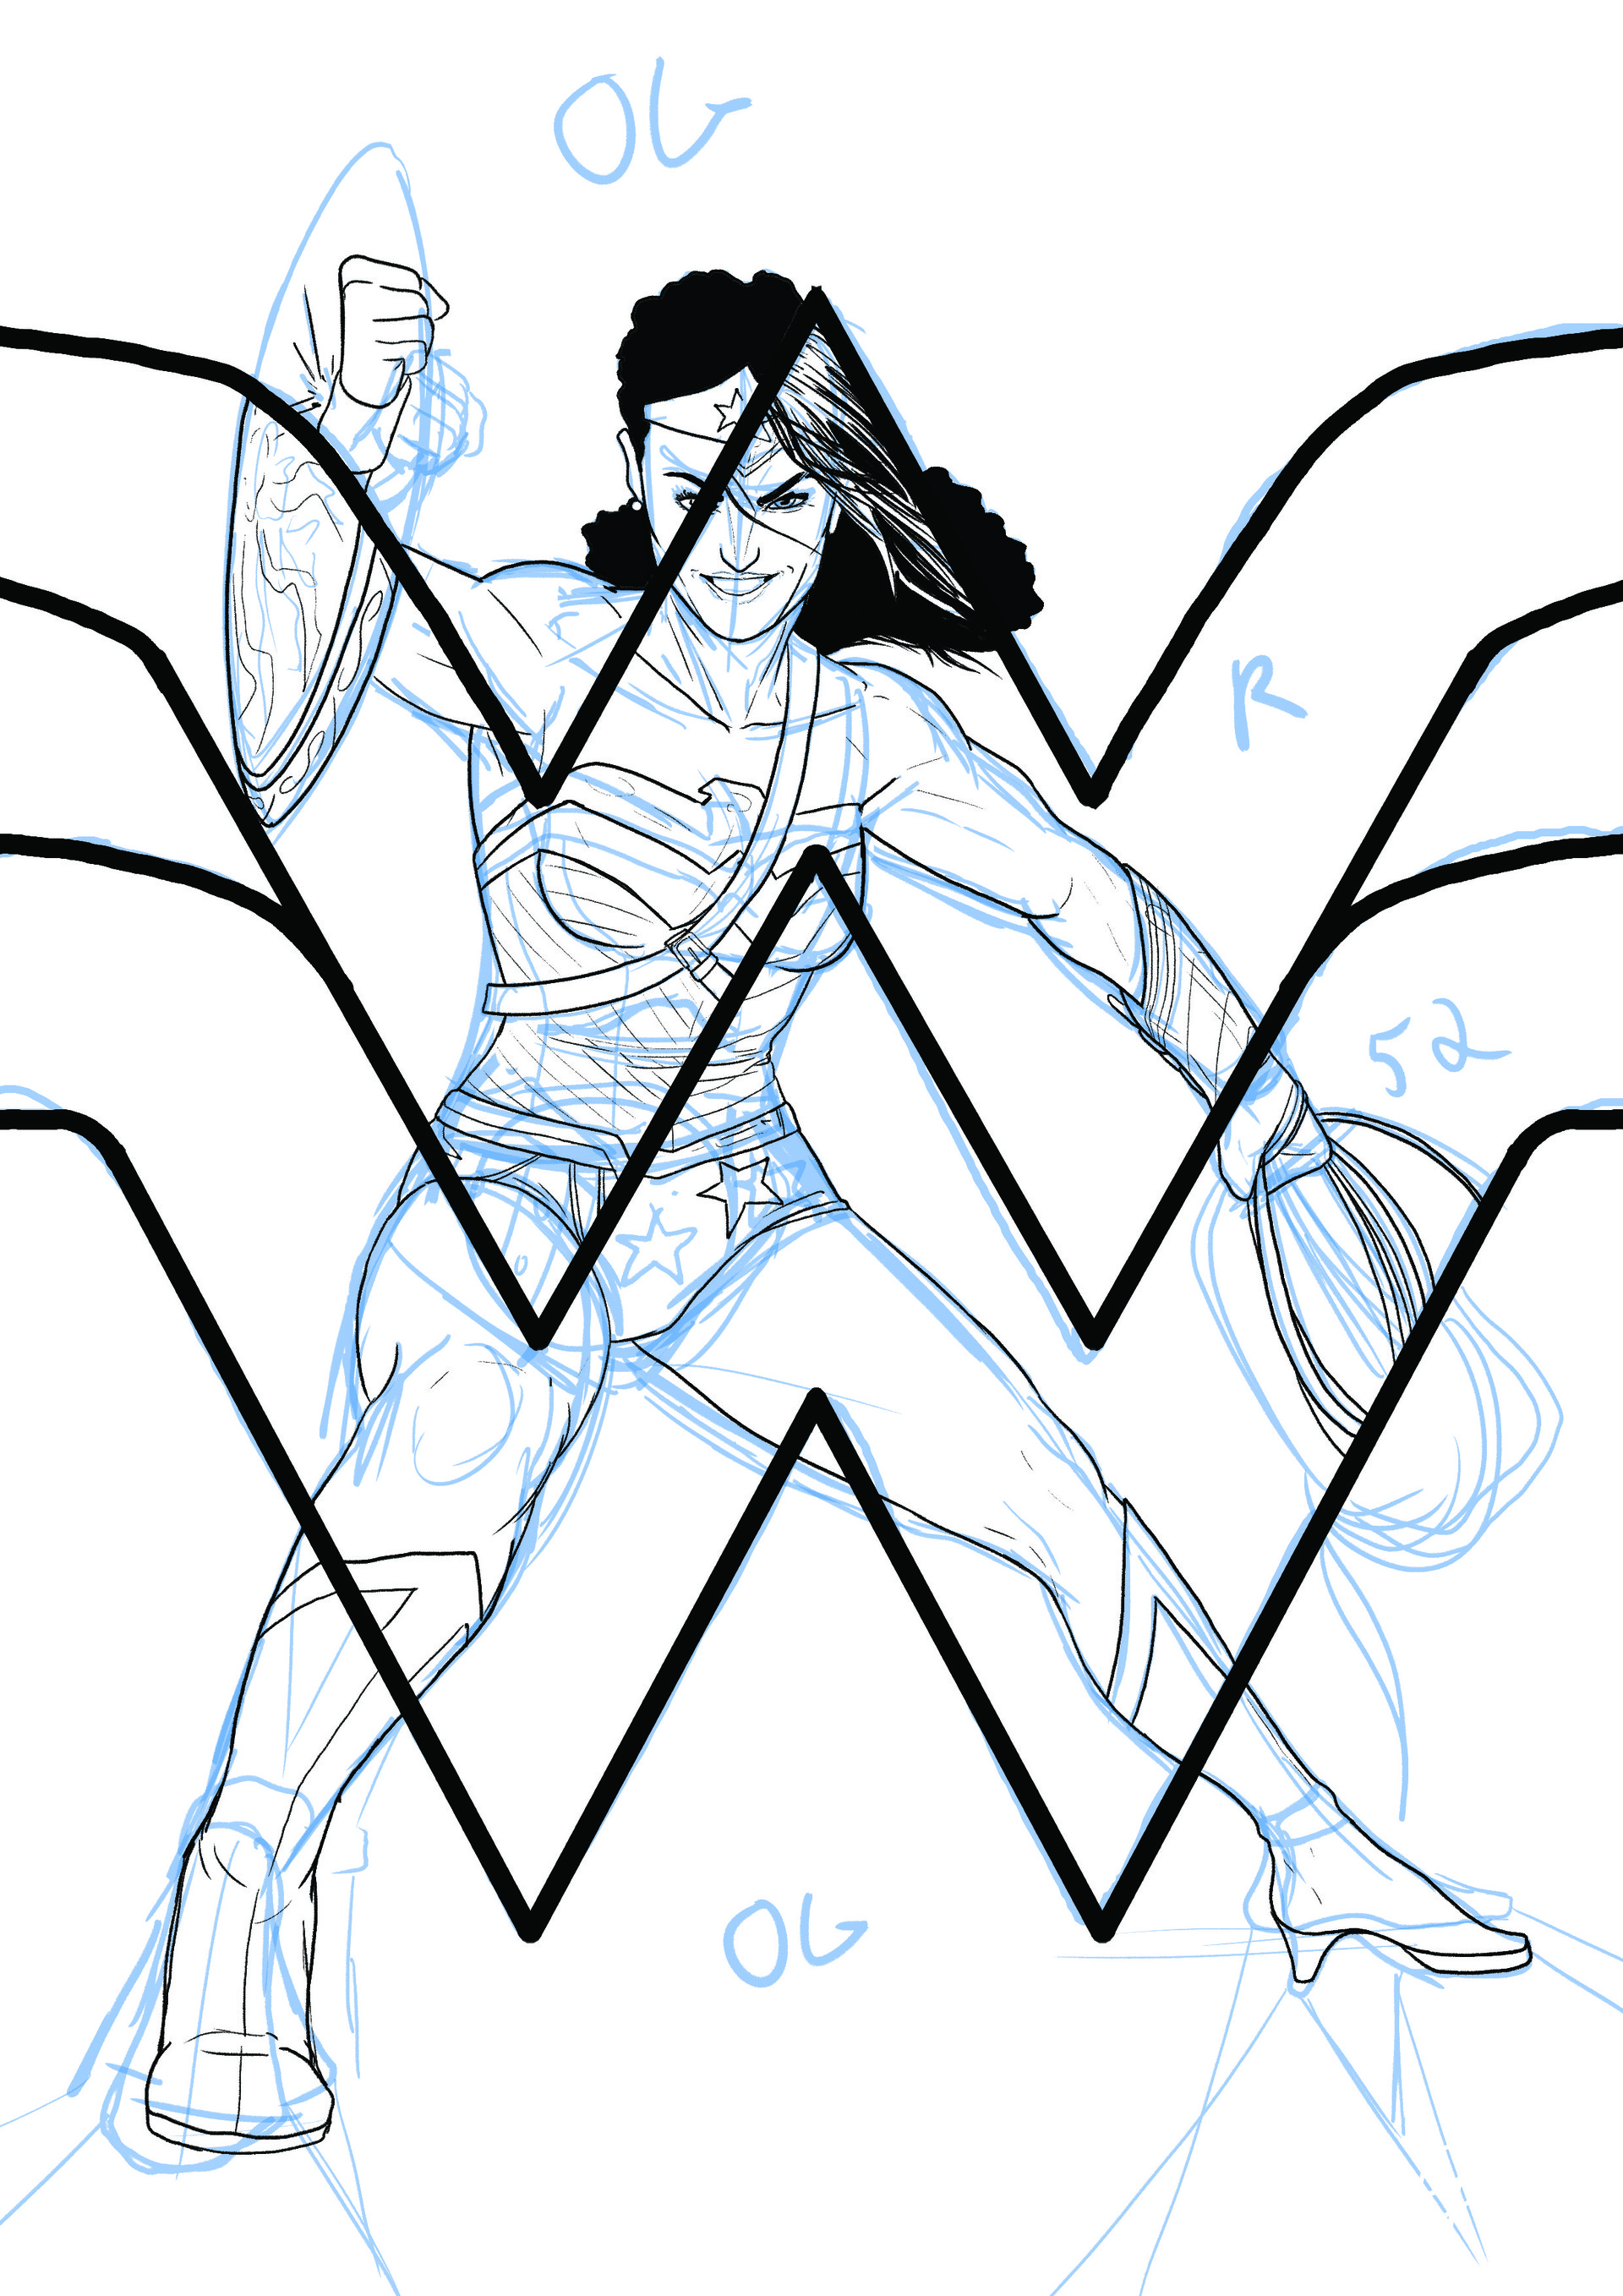 Elliot balson wonder woman 75th roughs inks